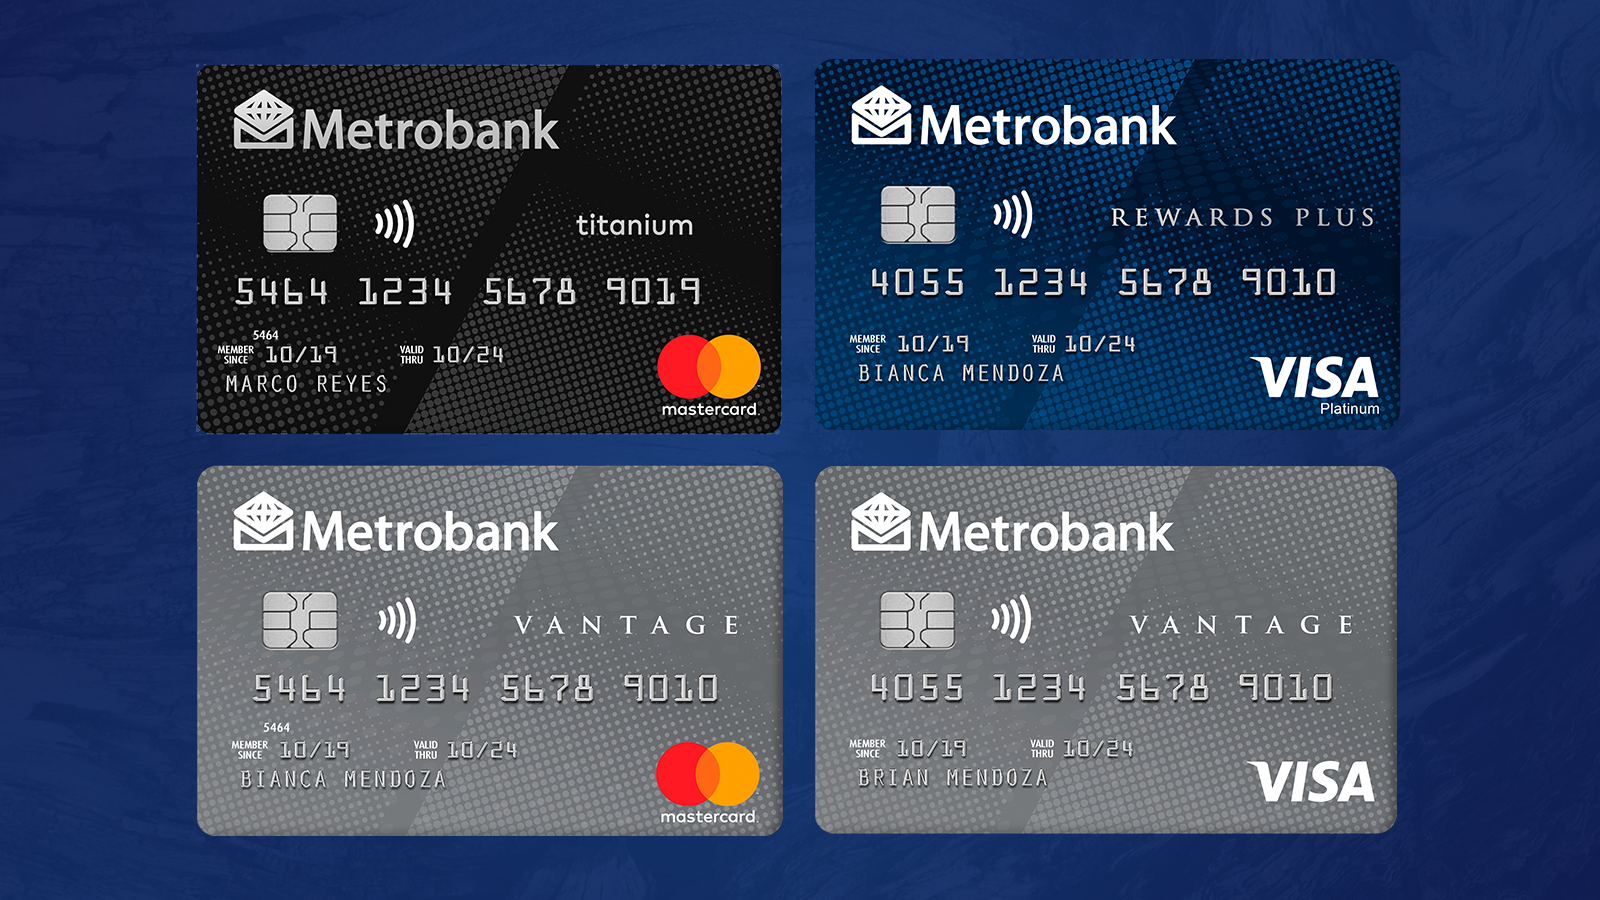 ScanToPay - Bank credit card detection and recognition (Scan To Pay) using deep learning